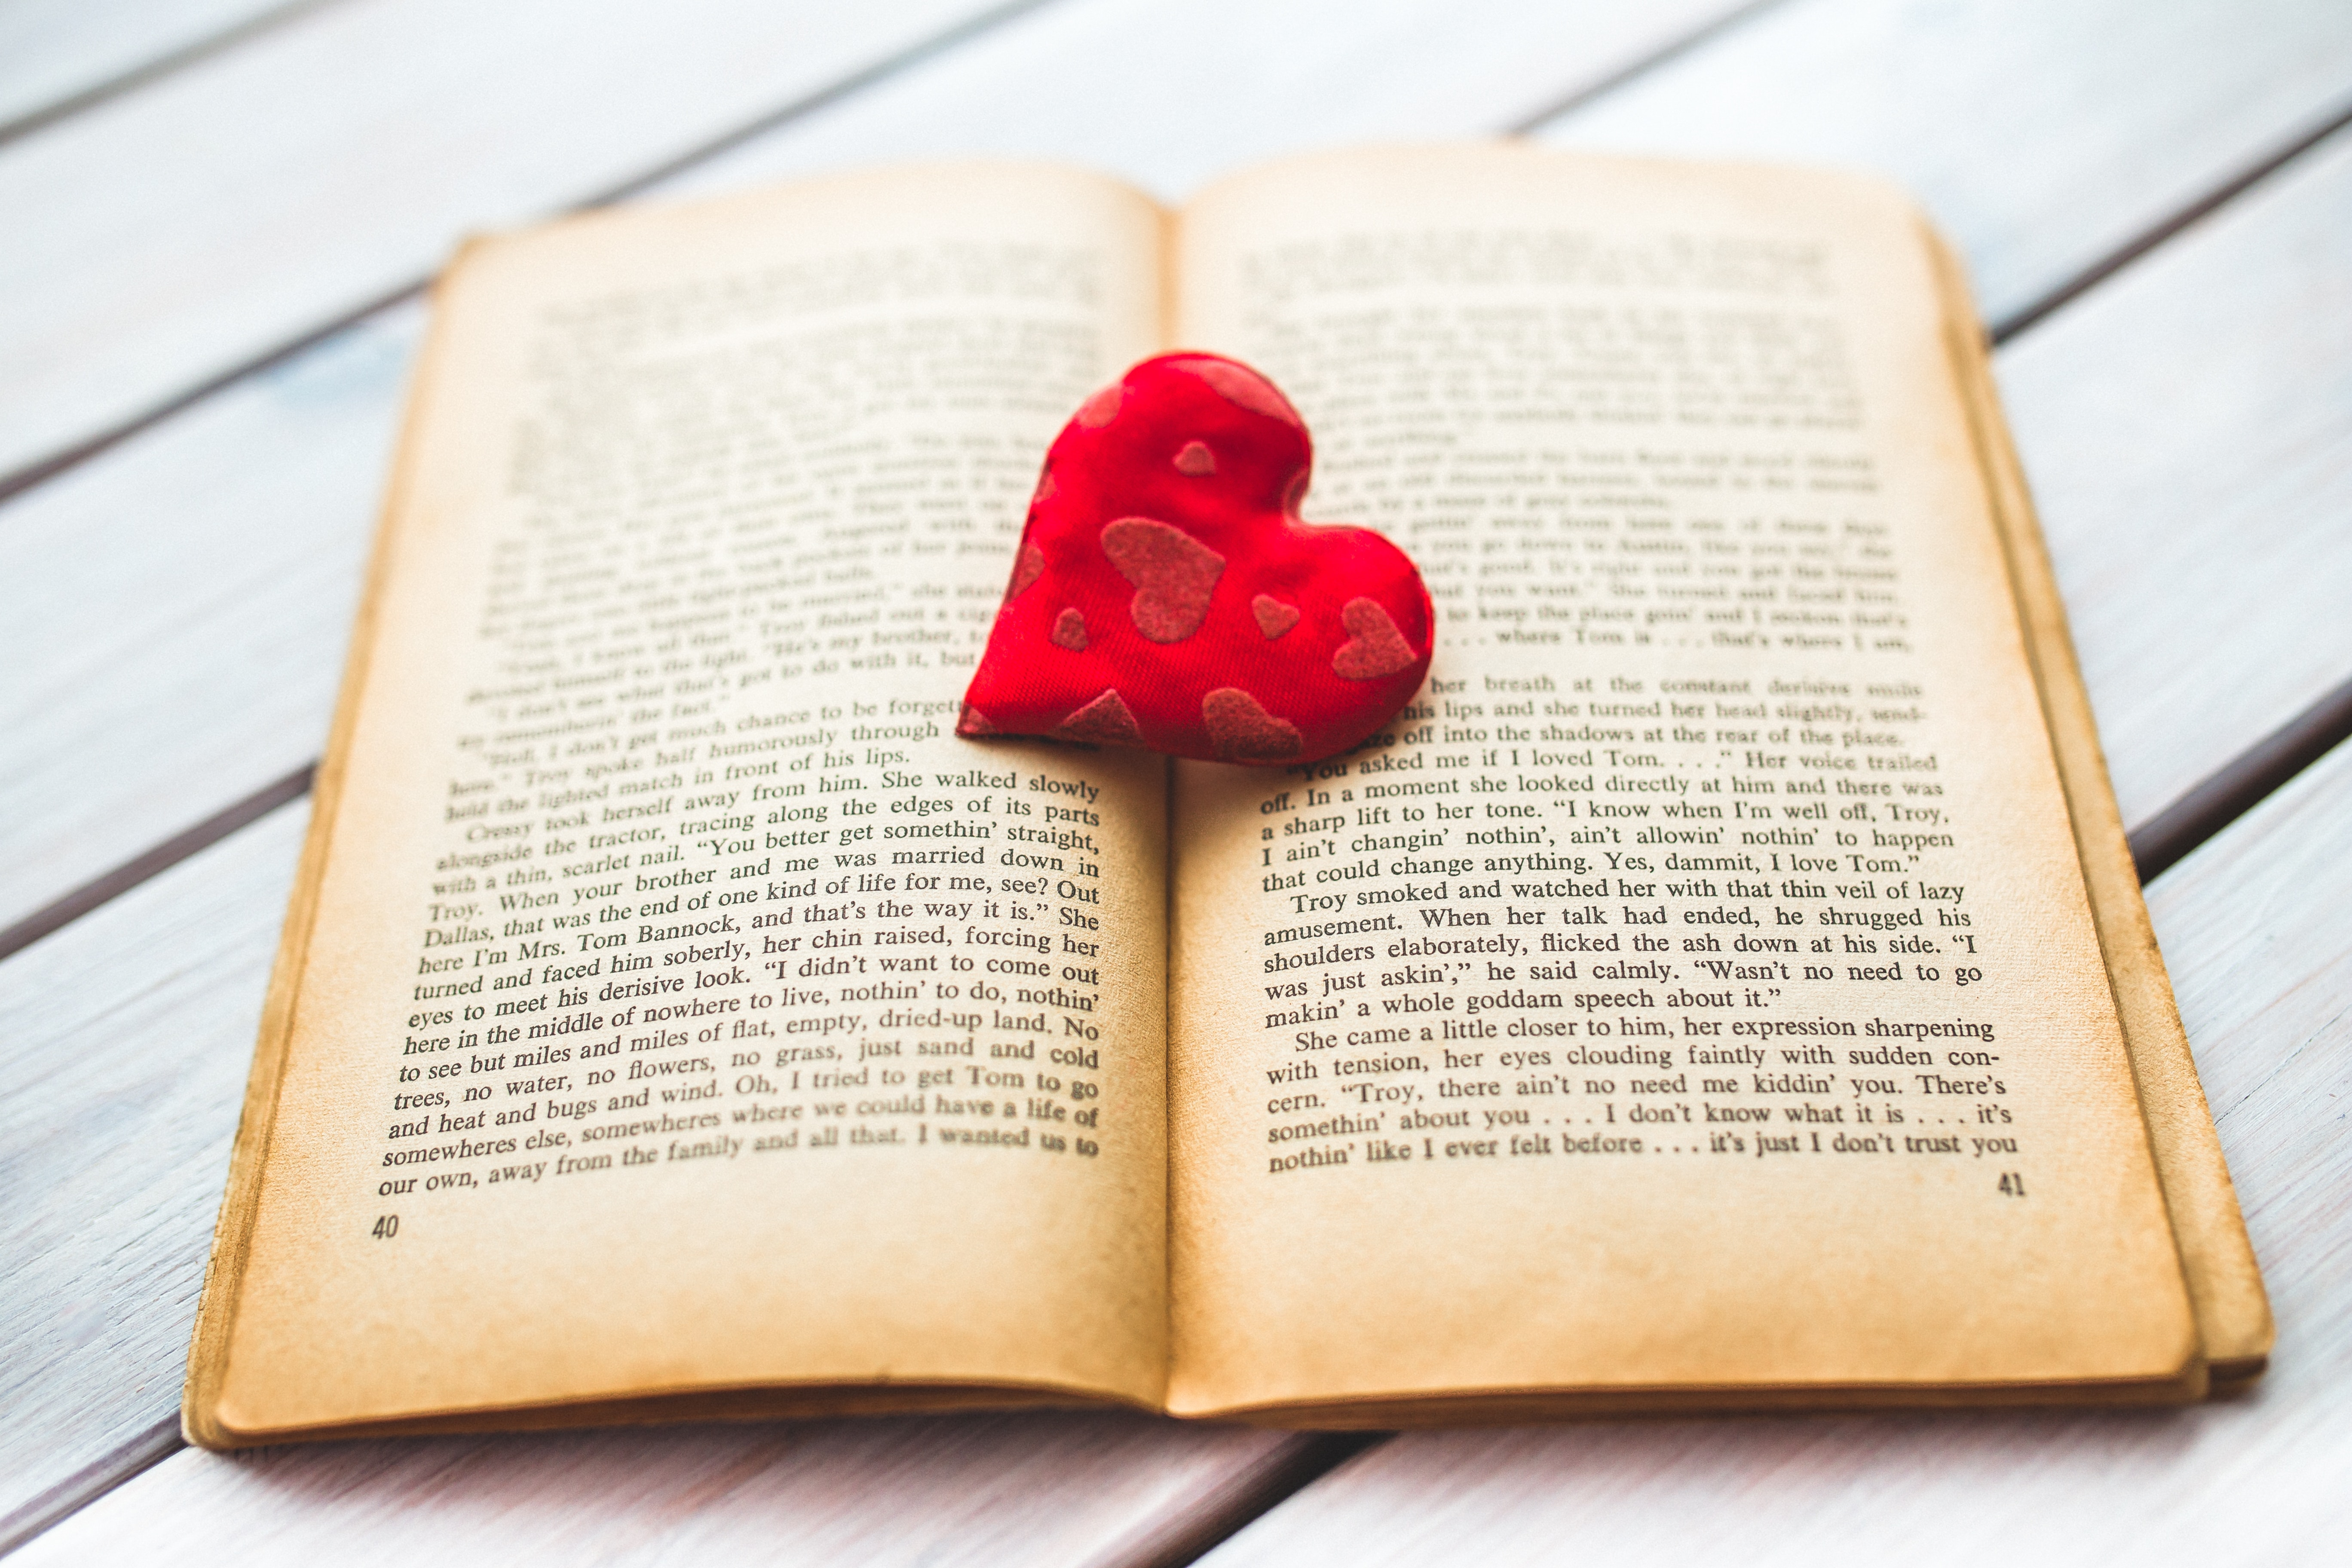 Red heart on a old opened book ii photo